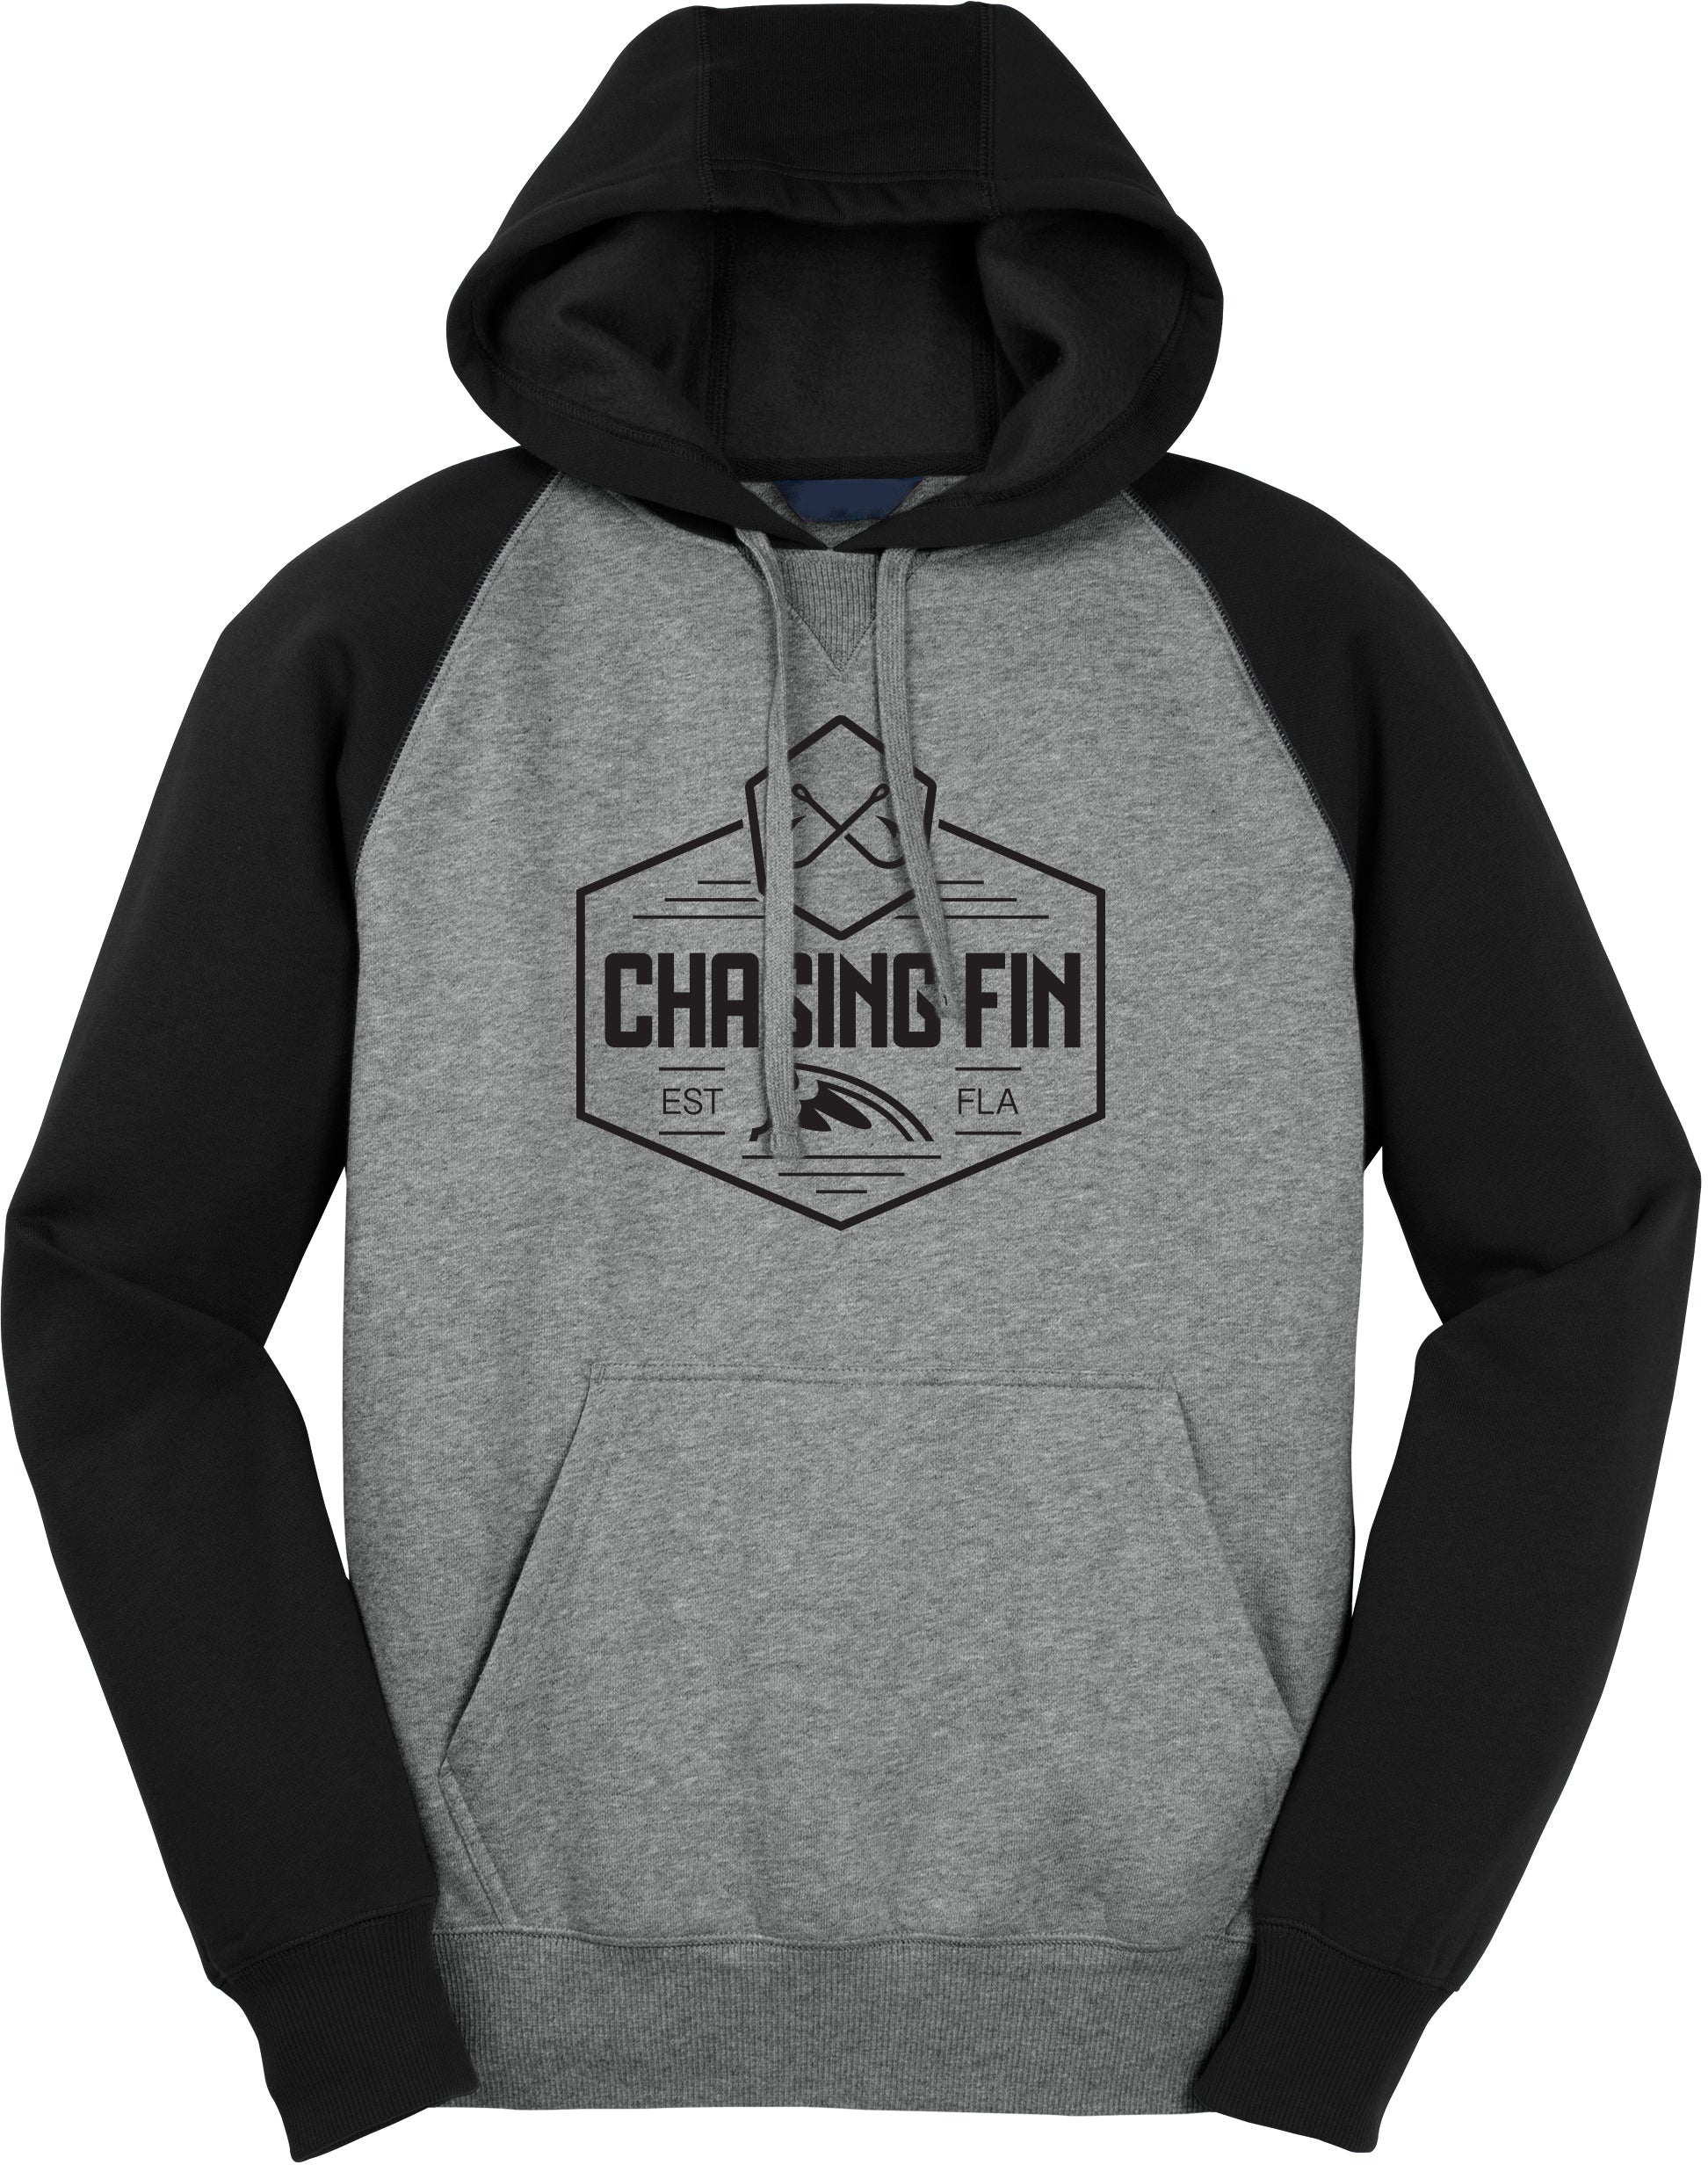 Chasing Fin Crest Logo Pullover Hoodie